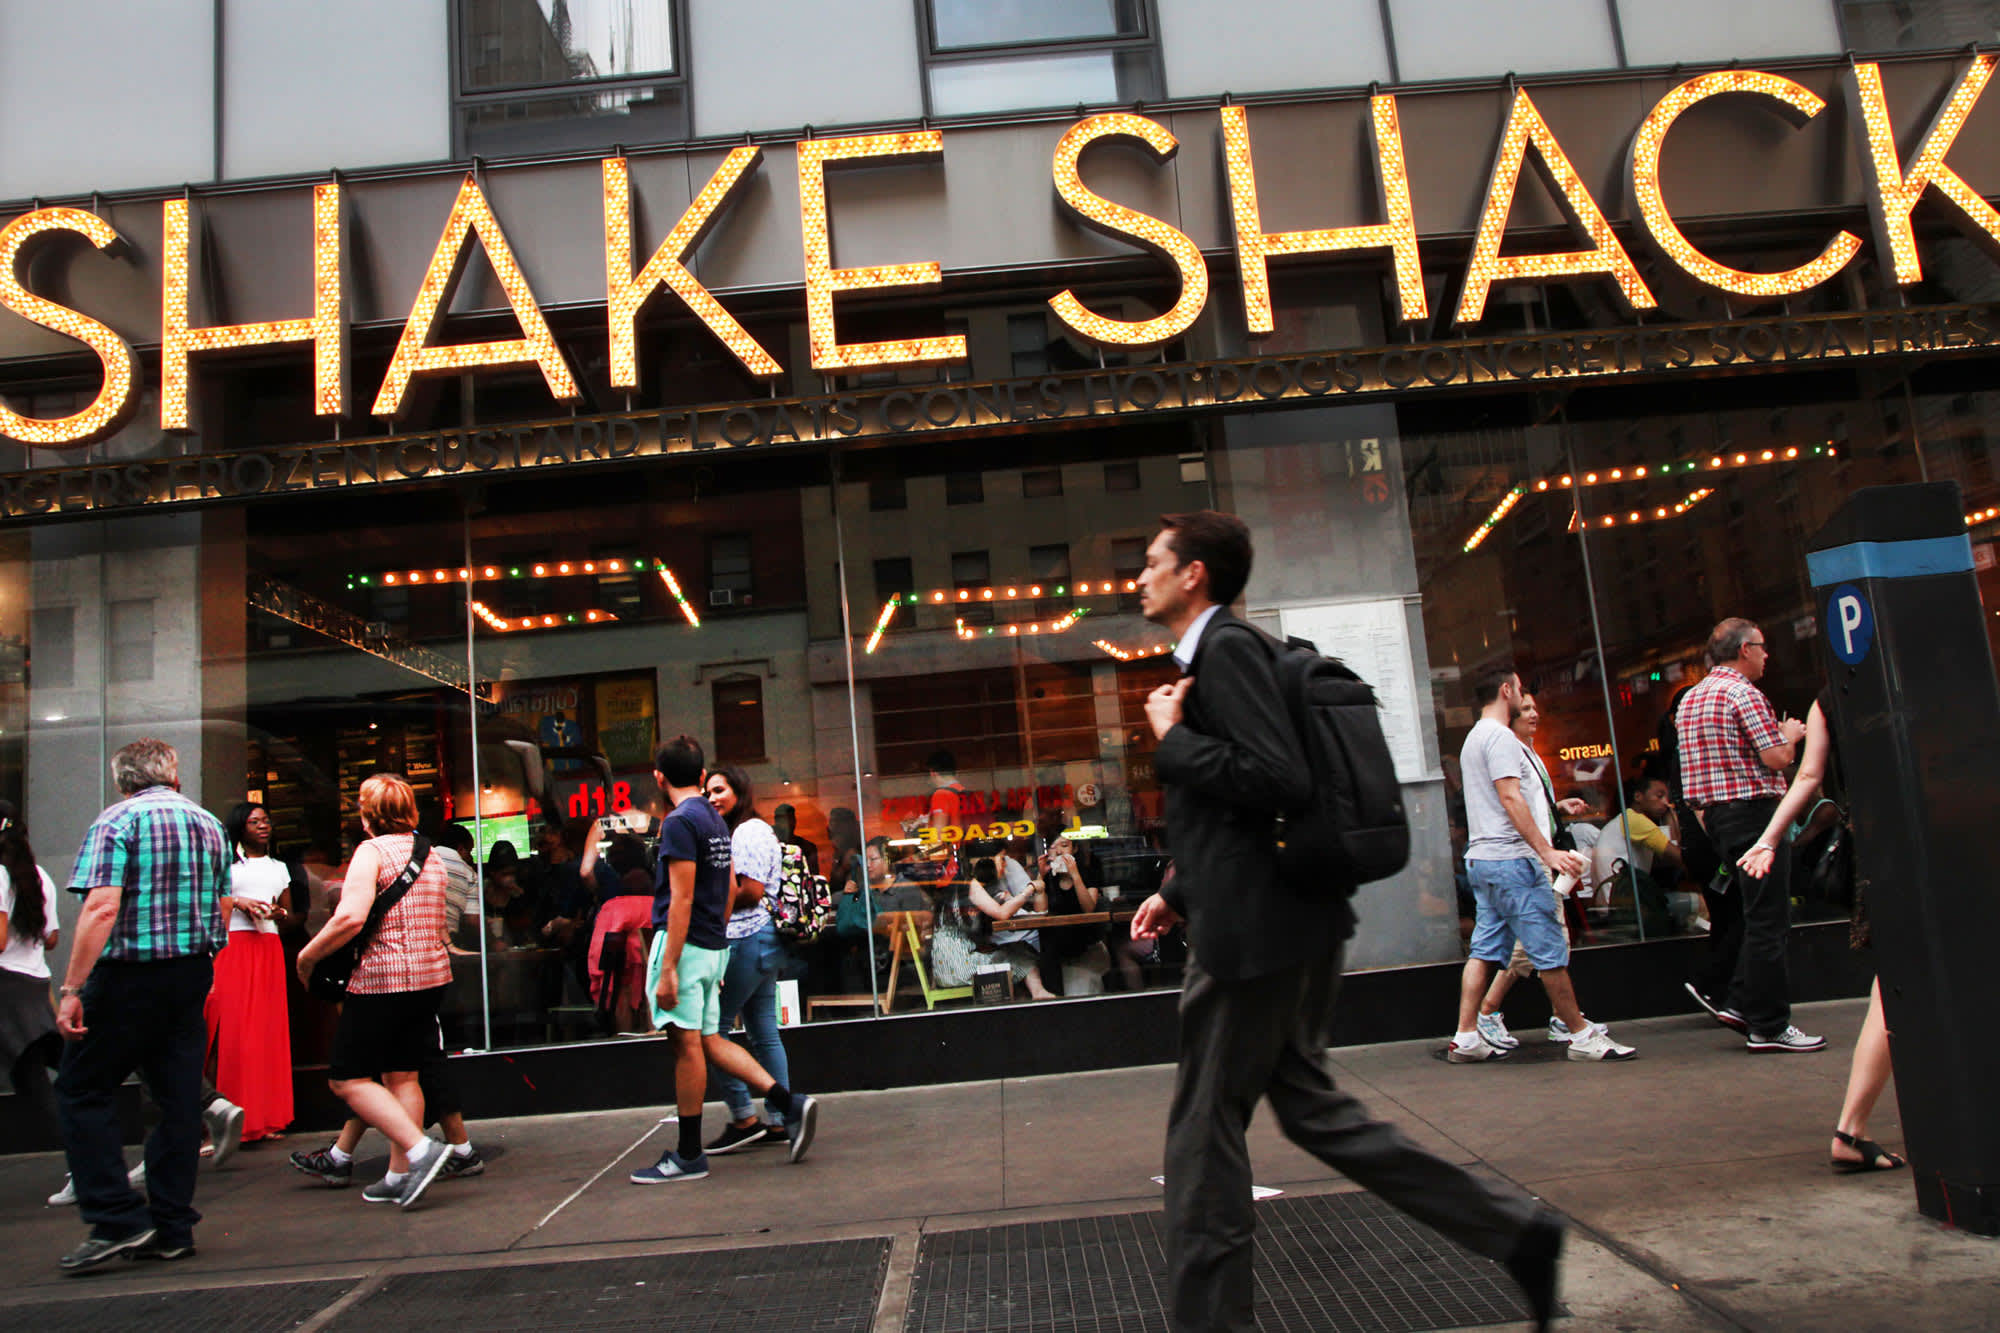 Stocks making the biggest moves after hours: Shake Shack, CBS, Expedia and more